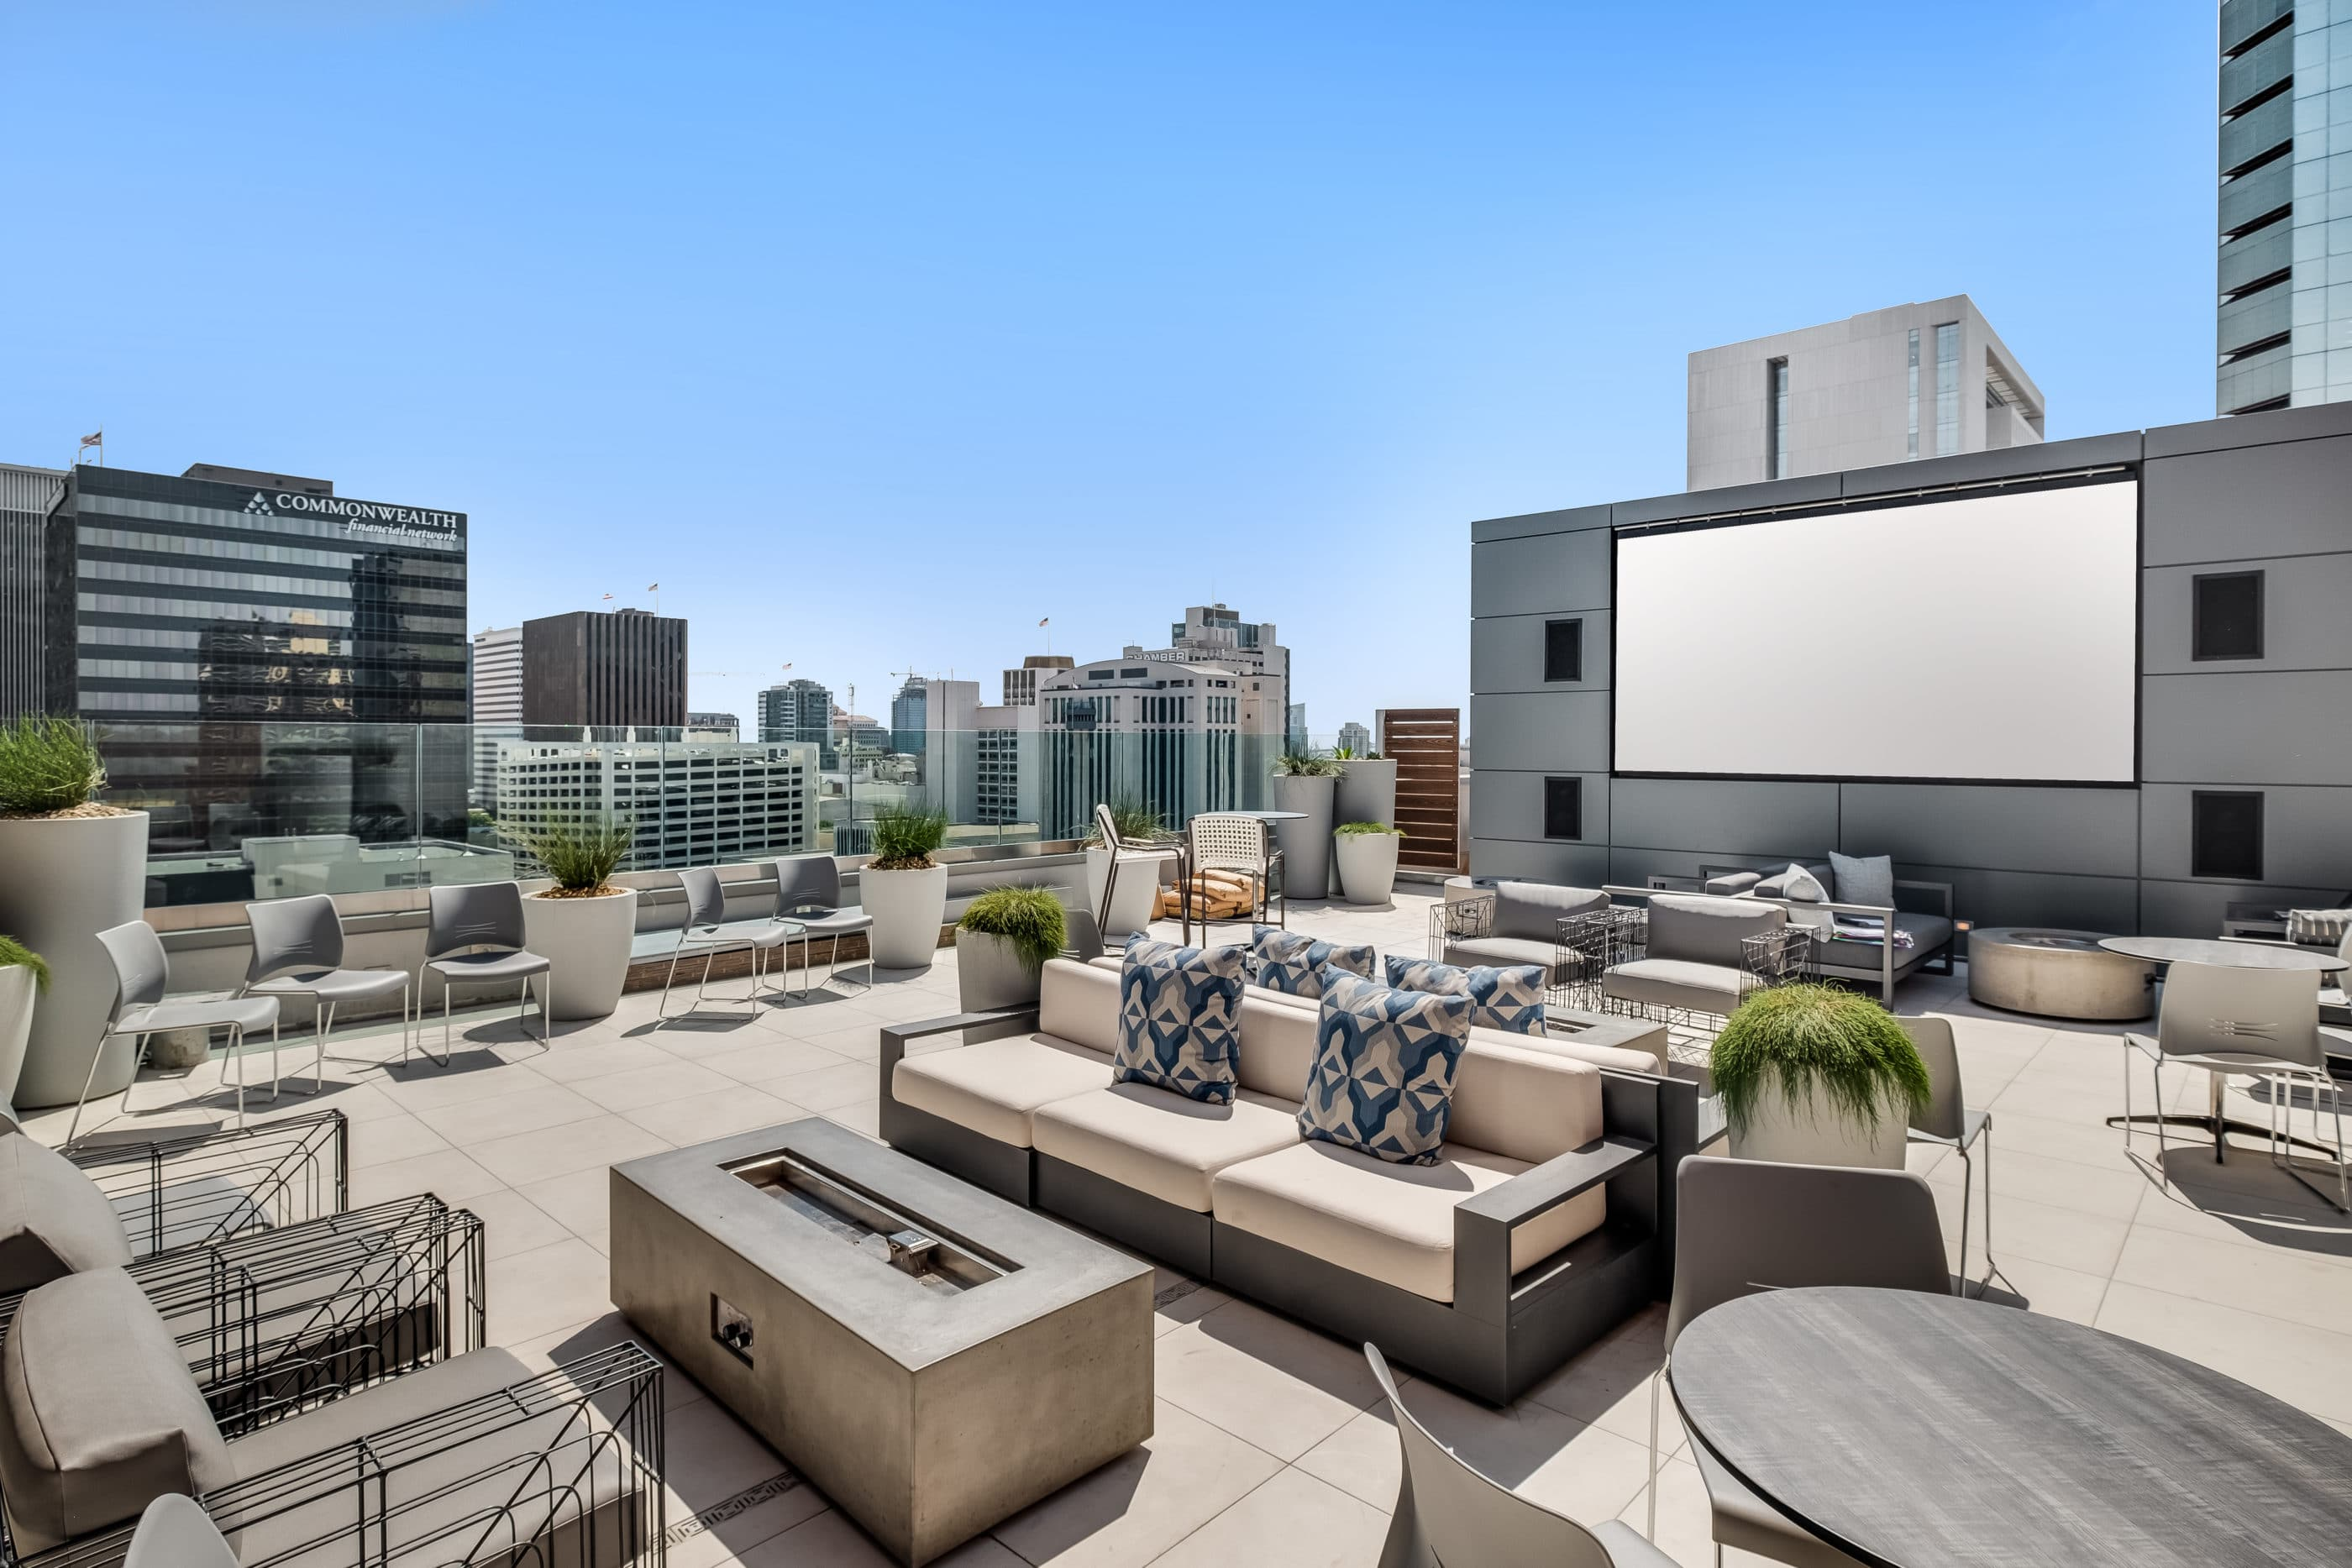 The rooftop lounge at Carte Hotel with its huge TV screen and view of surrounding buildings.